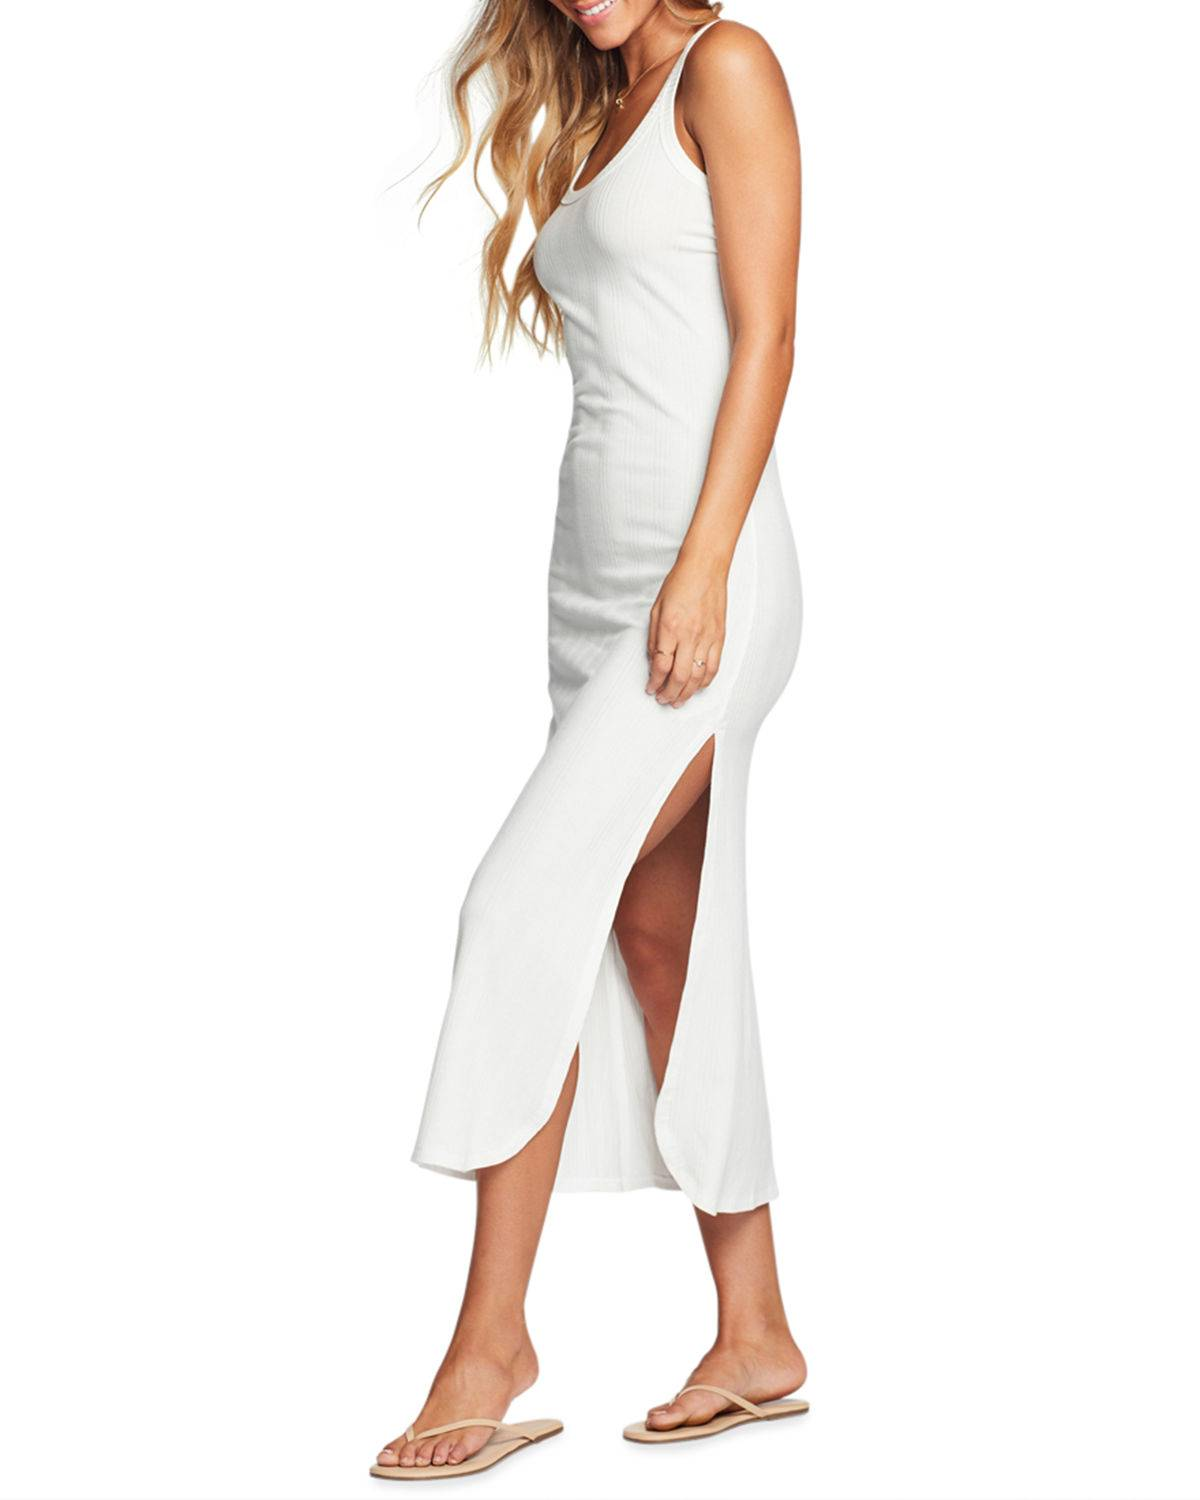 Vitamin A West Coverup Tank Dress - Size: Small